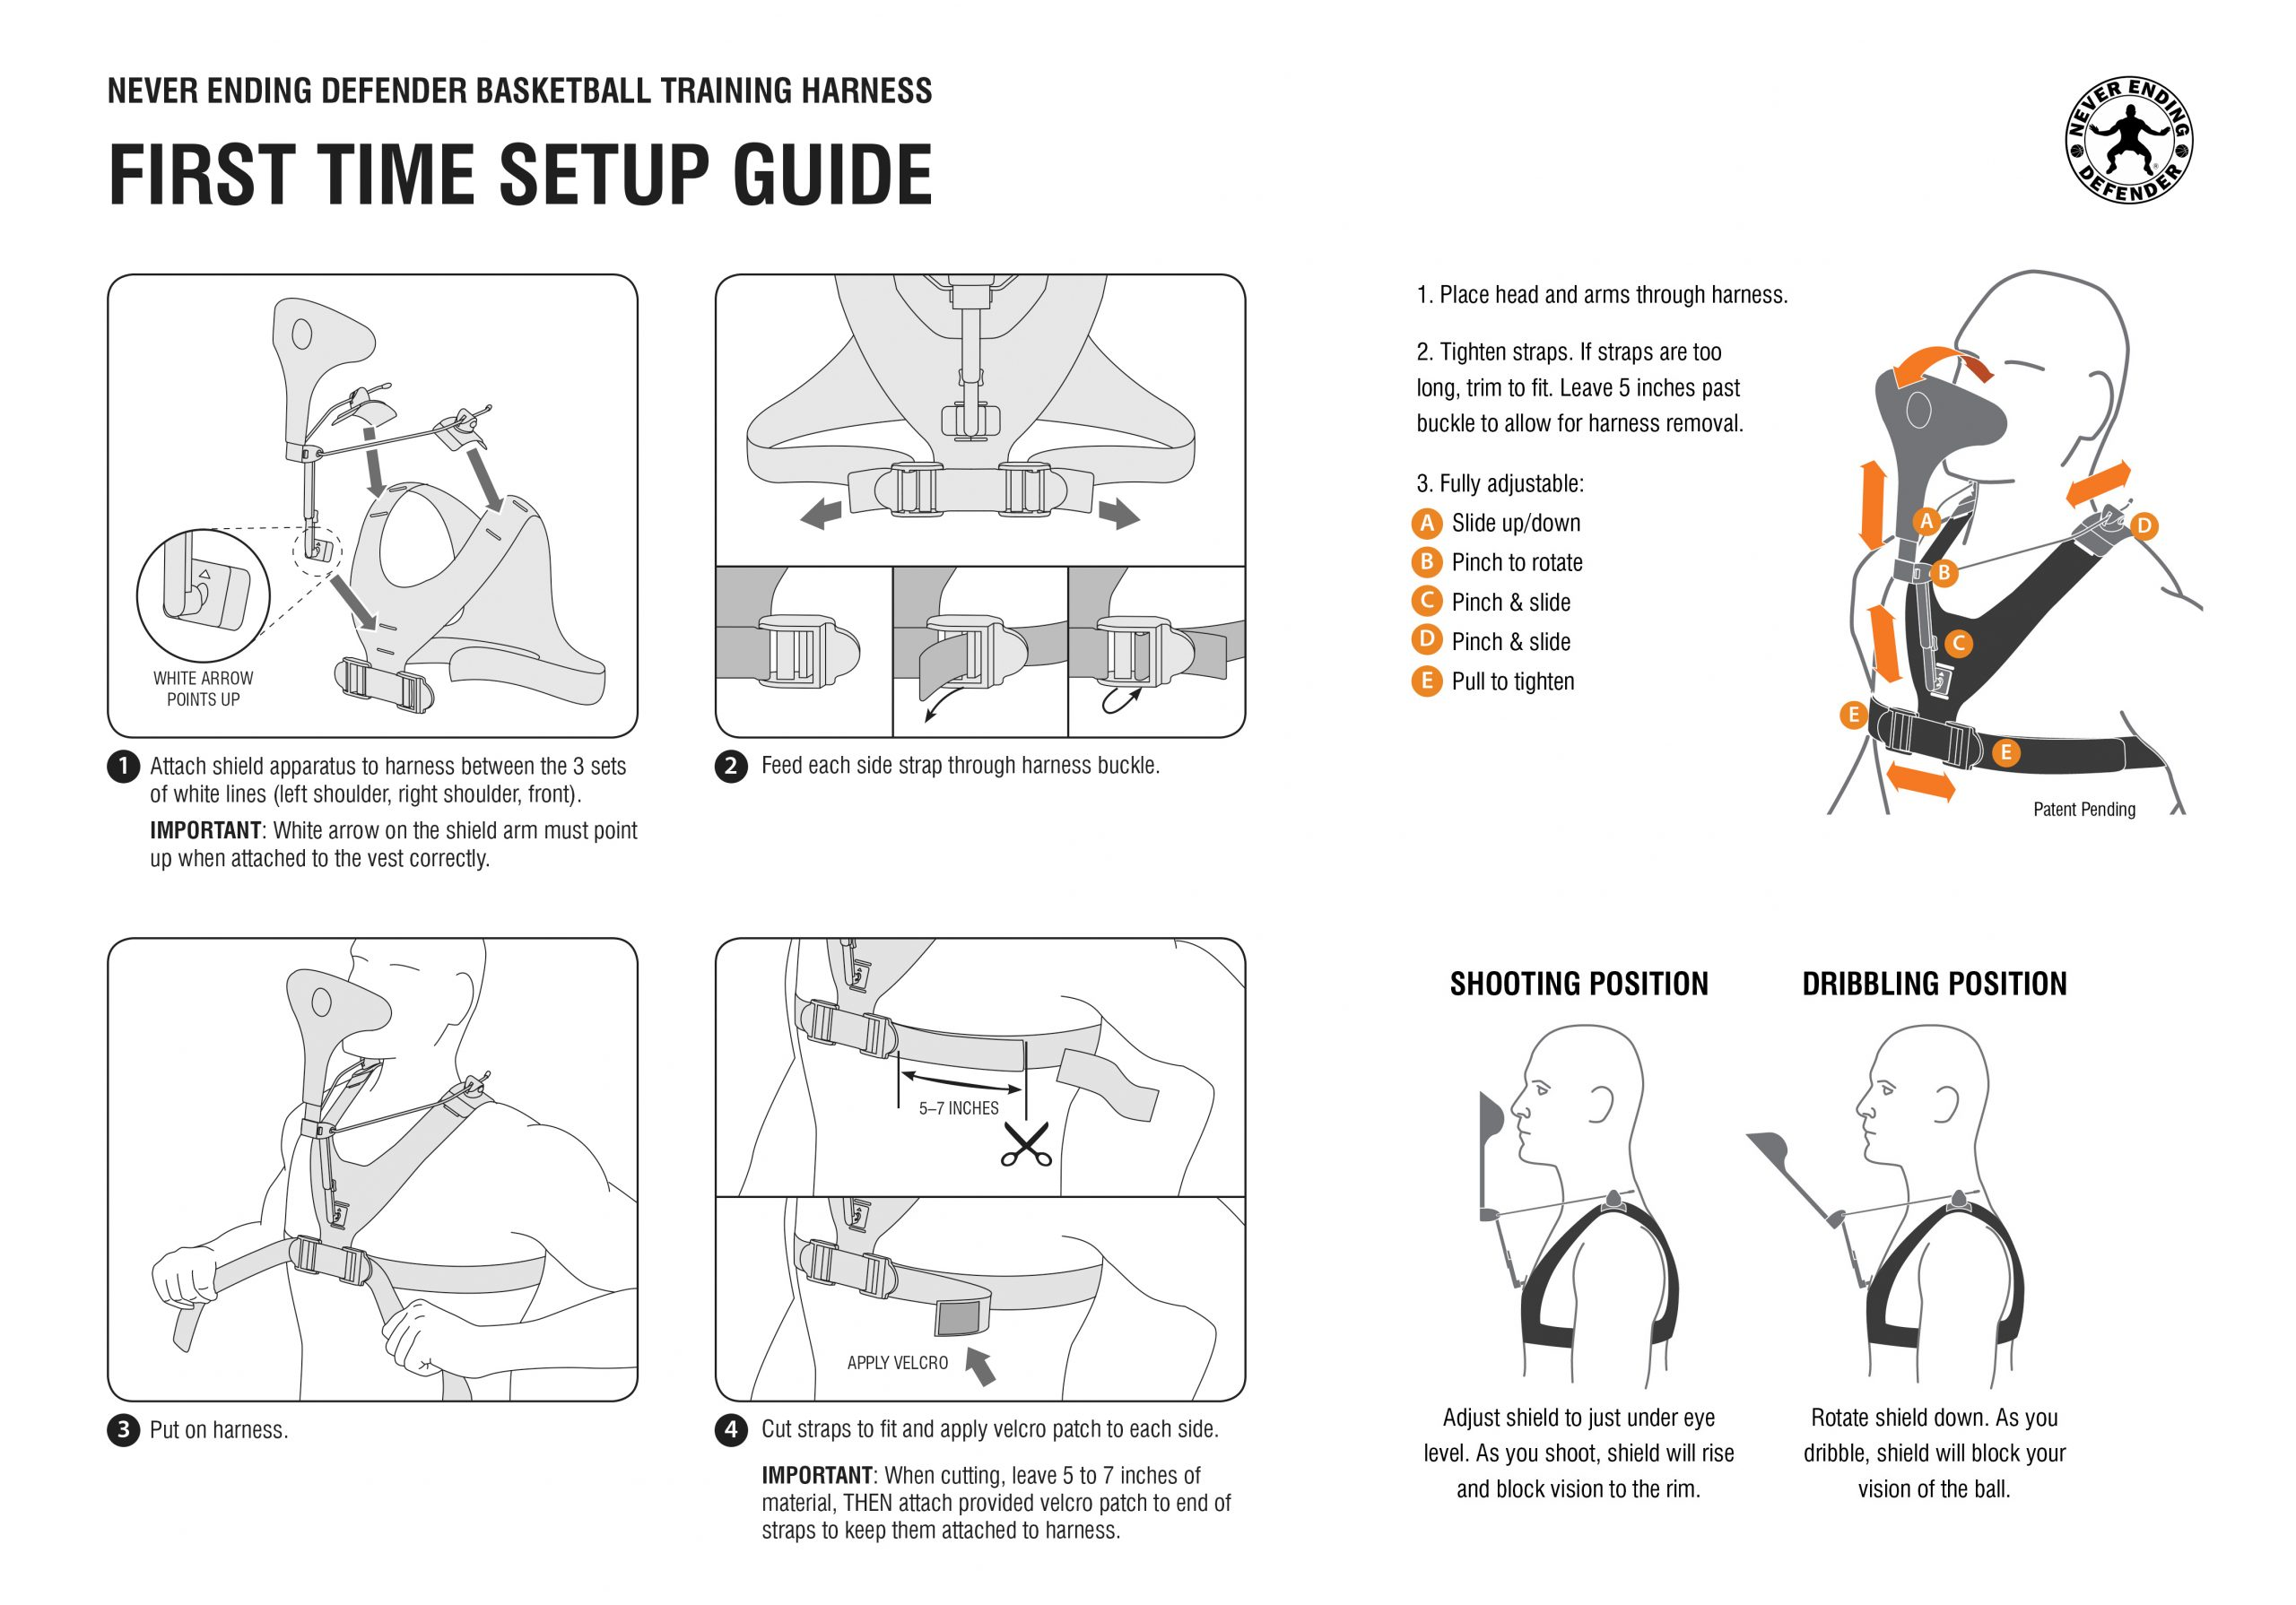 Instruction manual for a basketball training harness.